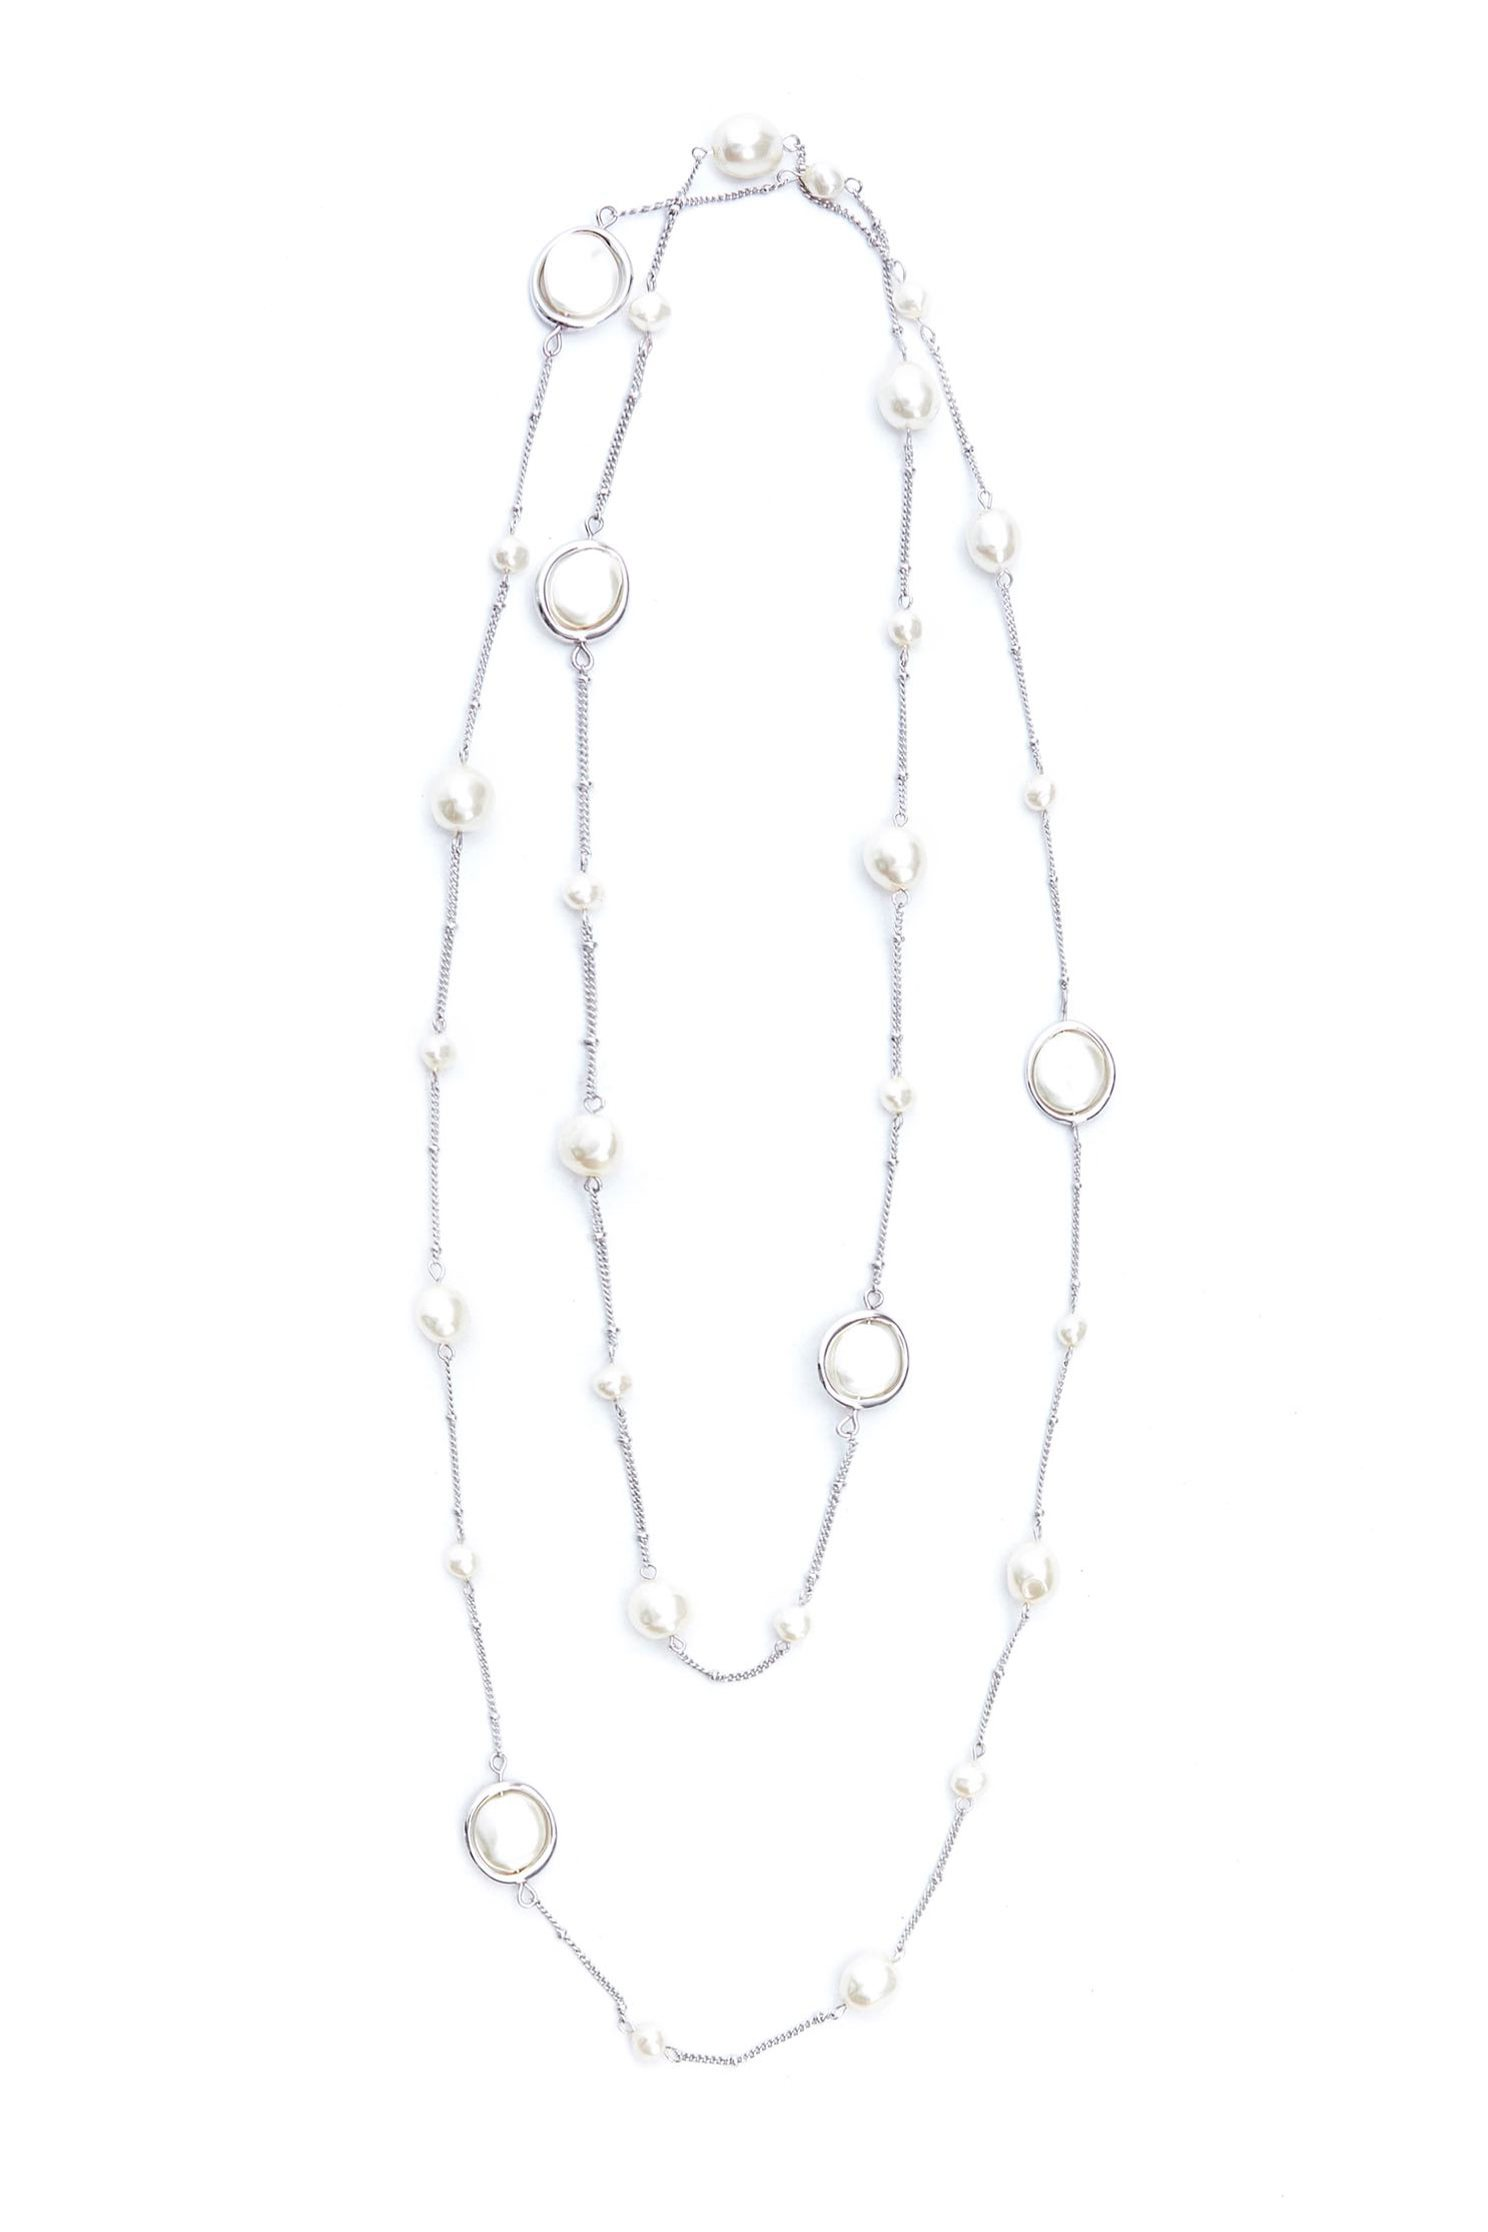 Irregular Pearl Long Necklace,Necklace,Accessories